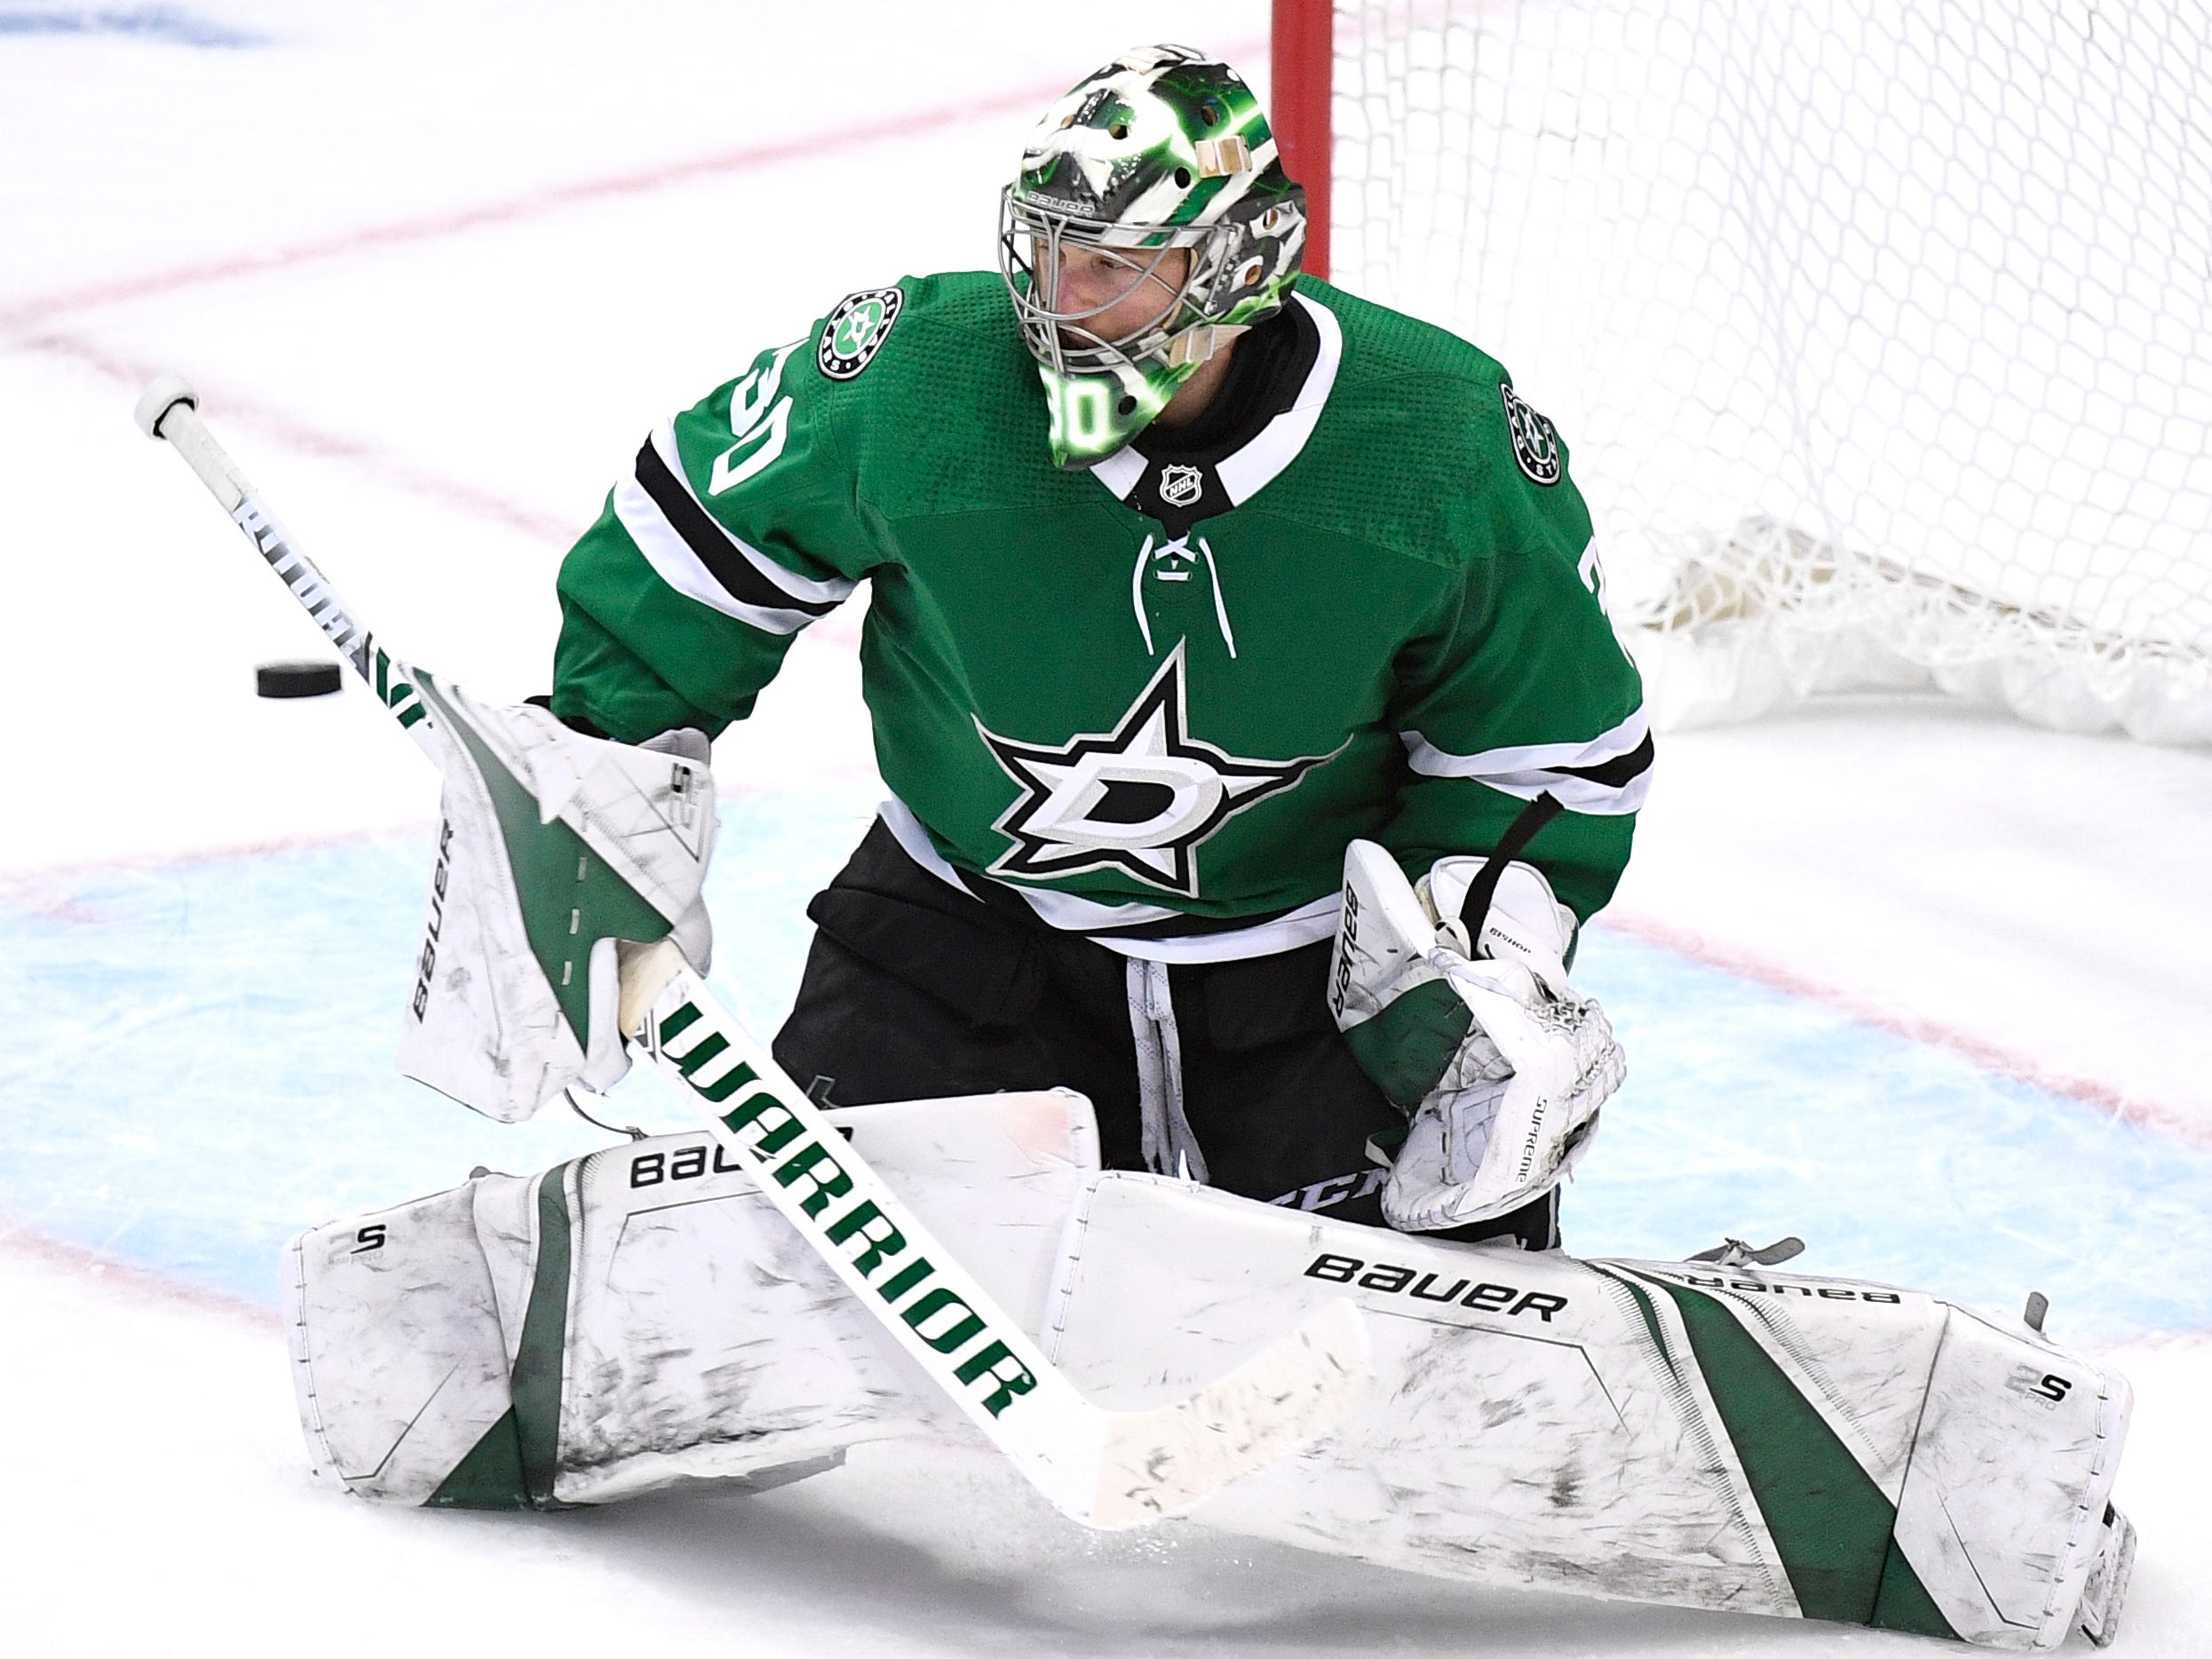 Dallas Stars goaltender Ben Bishop (30) blocks a Predators shot during the third period of the divisional semifinal game at the American Airlines Center in Dallas, Texas, Monday, April 22, 2019.